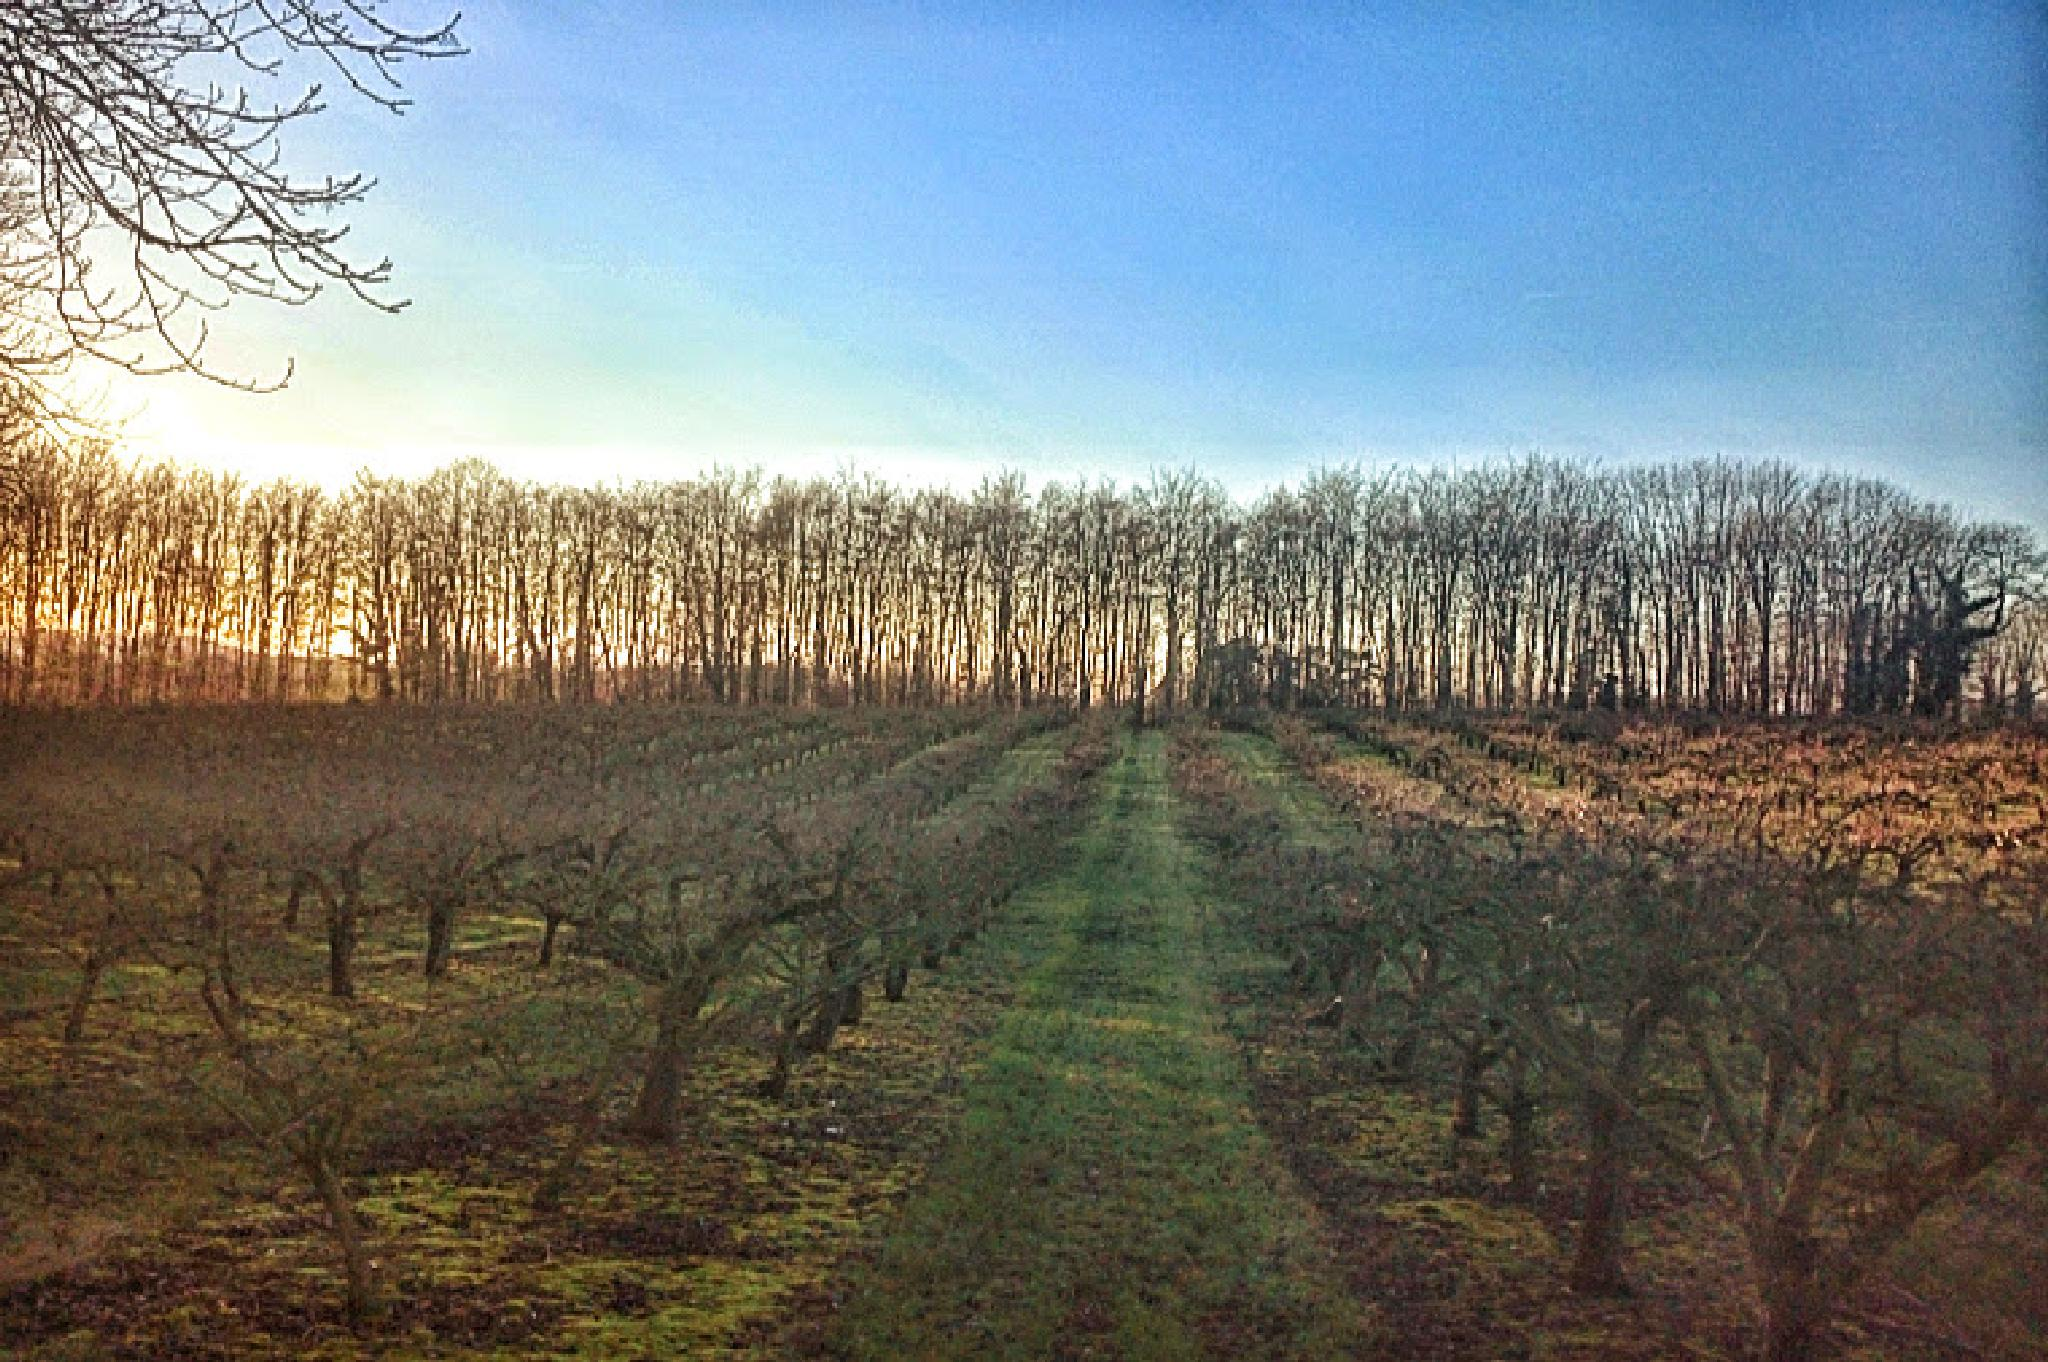 Orchards & Trees by geoff richards